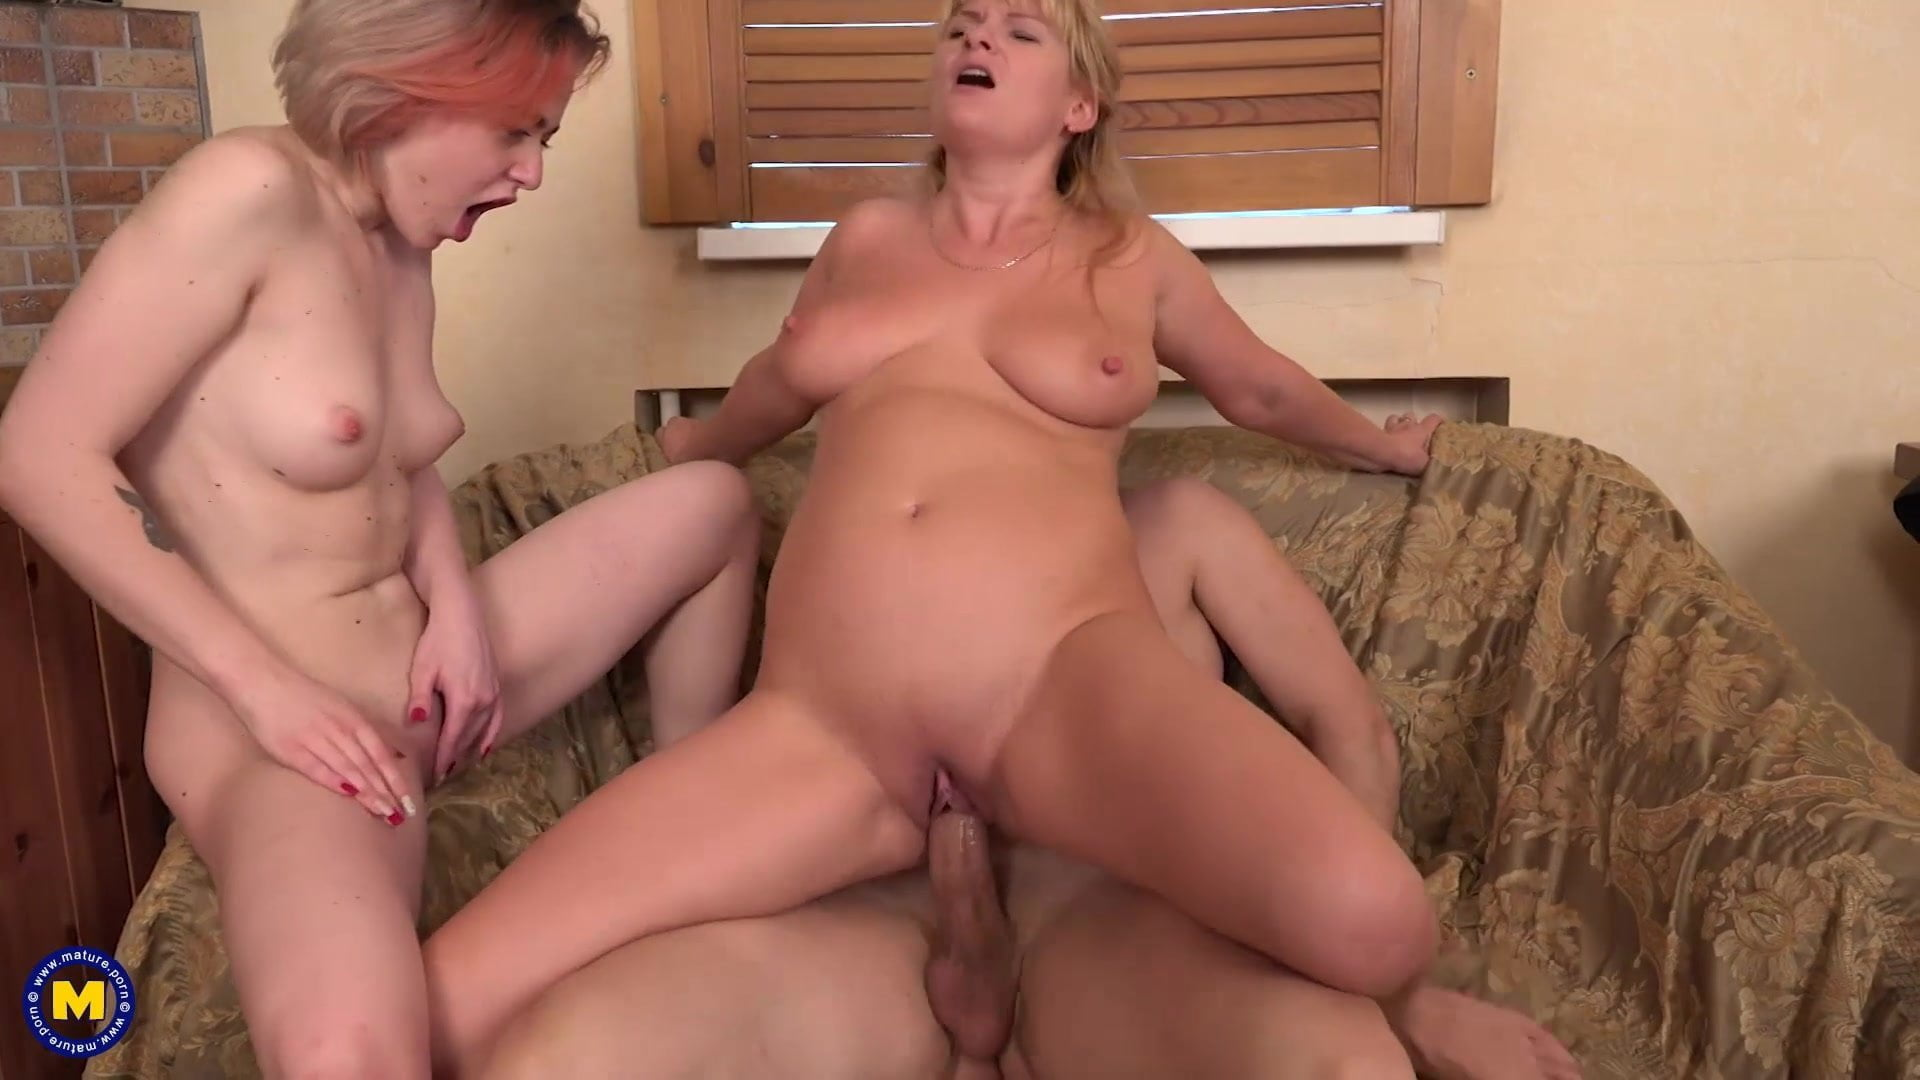 Mom and daughter threesome porn stsr database Family Sex With Mother And Daughter Free Porn Db Xhamster Xhamster